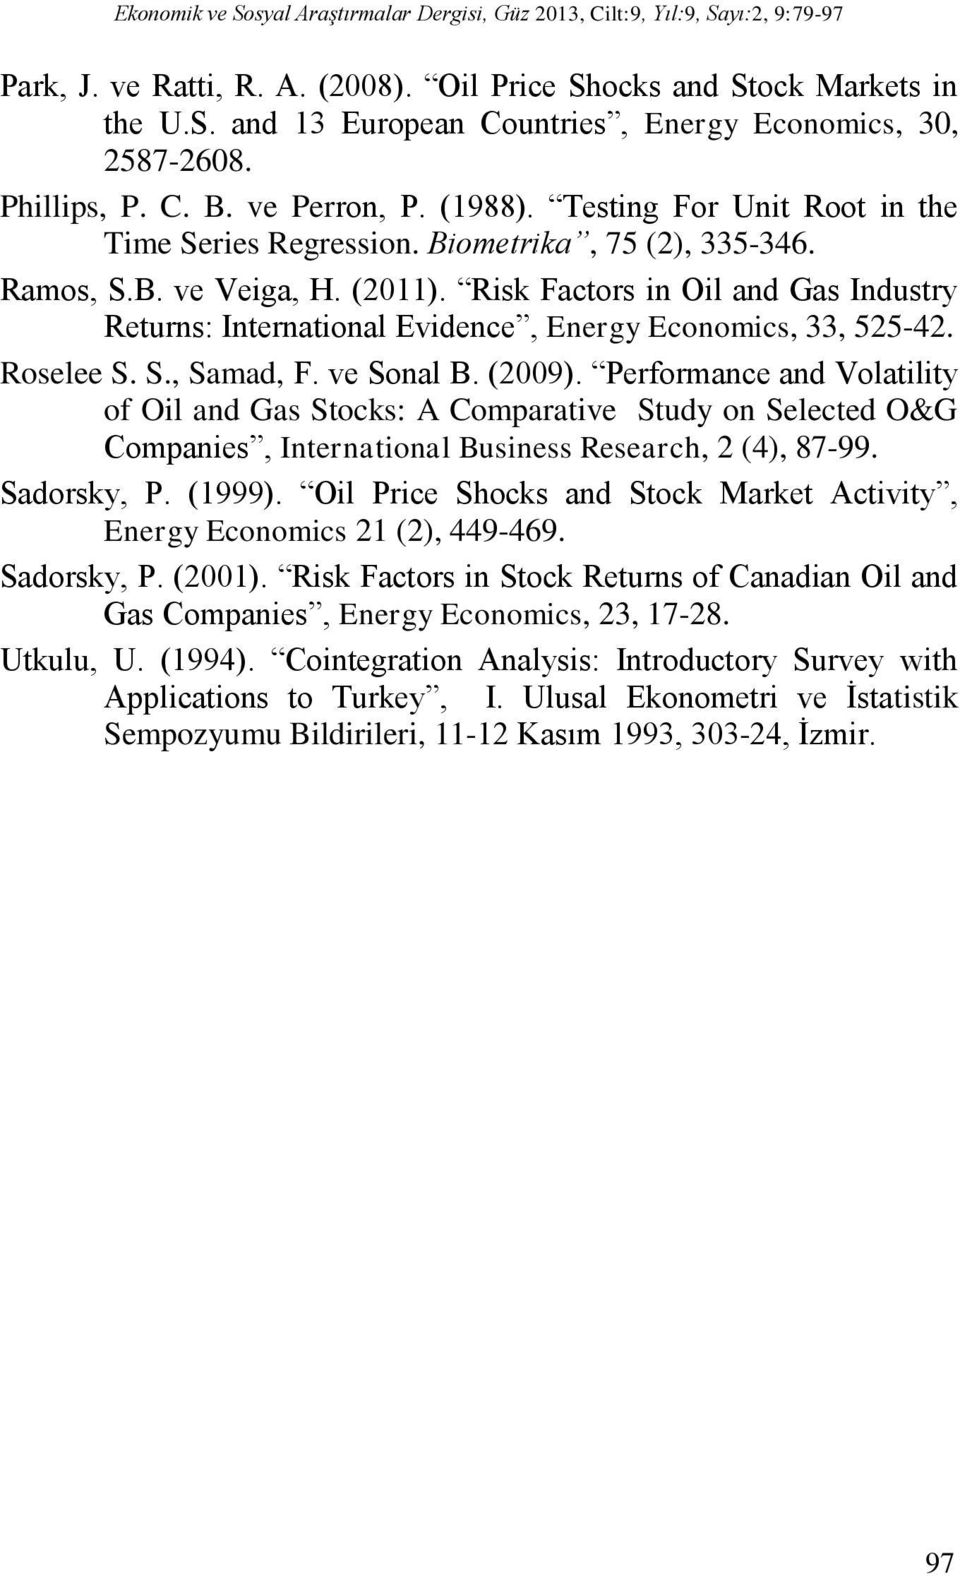 Risk Facors in Oil and Gas Indusry Reurns: Inernaional Evidence, Energy Economics, 33, 52542. Roselee S. S., Samad, F. ve Sonal B. (2009).